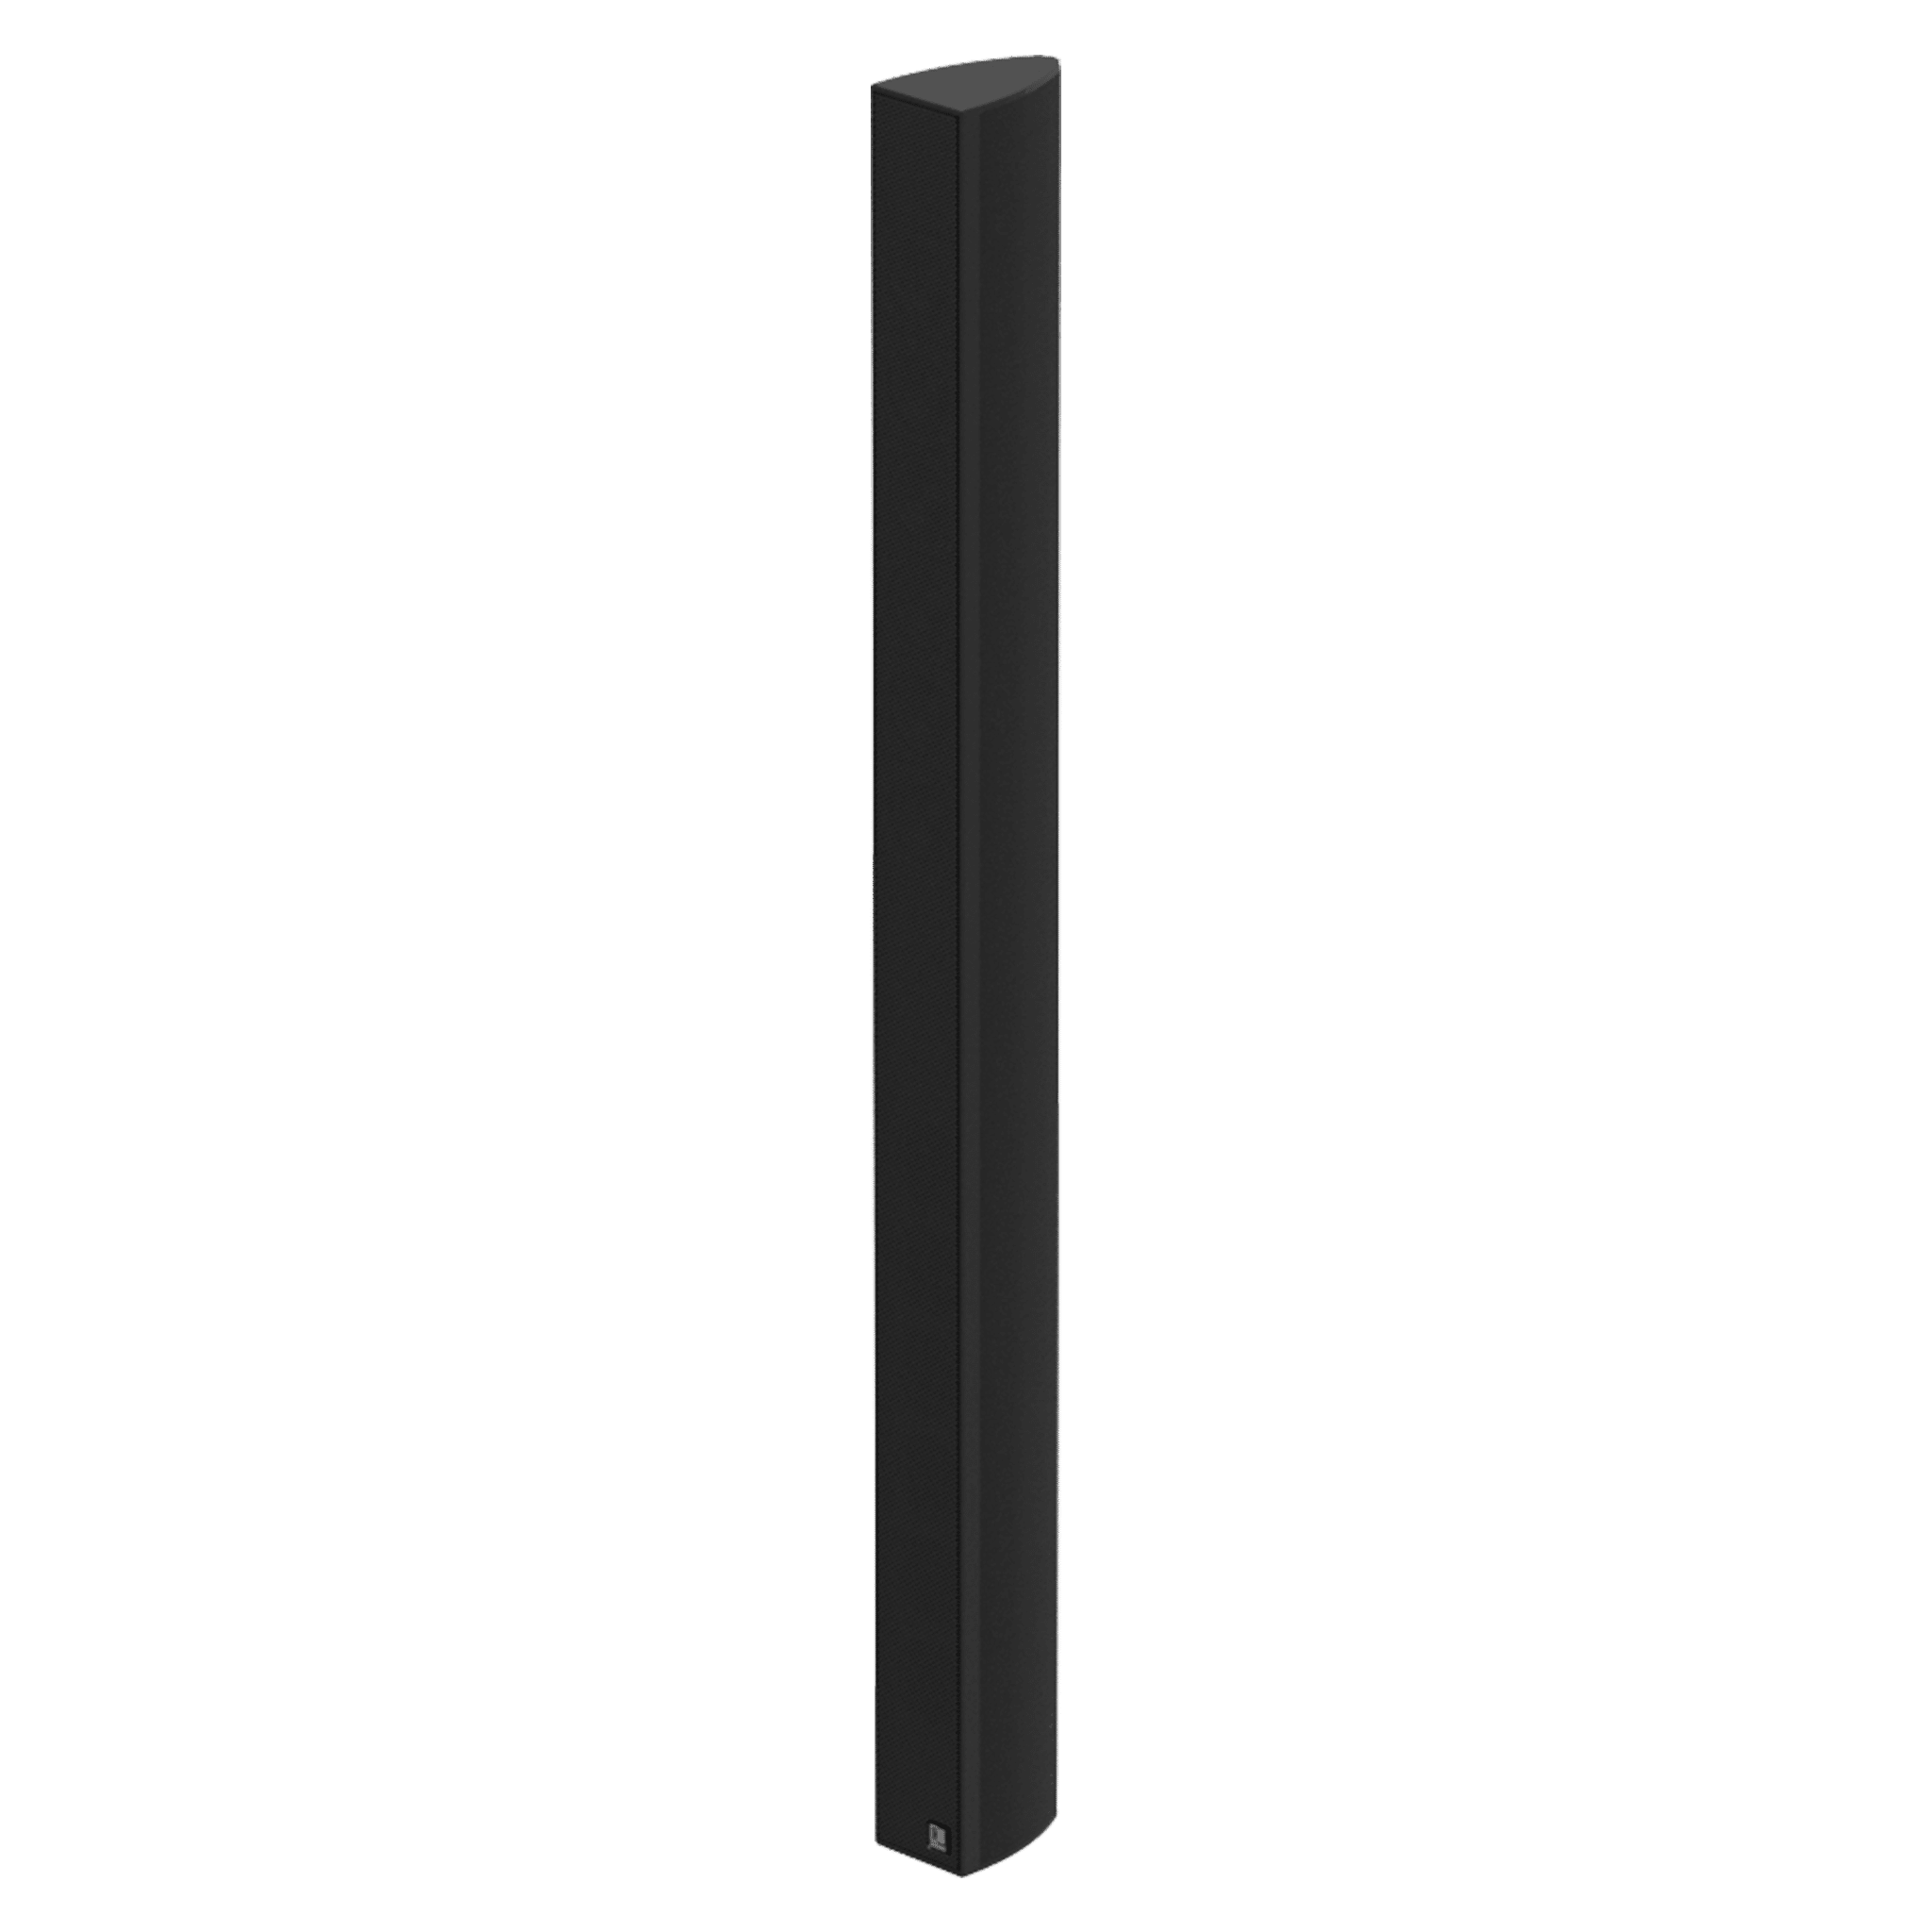 KYRA12_O - Outdoor design column speaker 12 x 2""